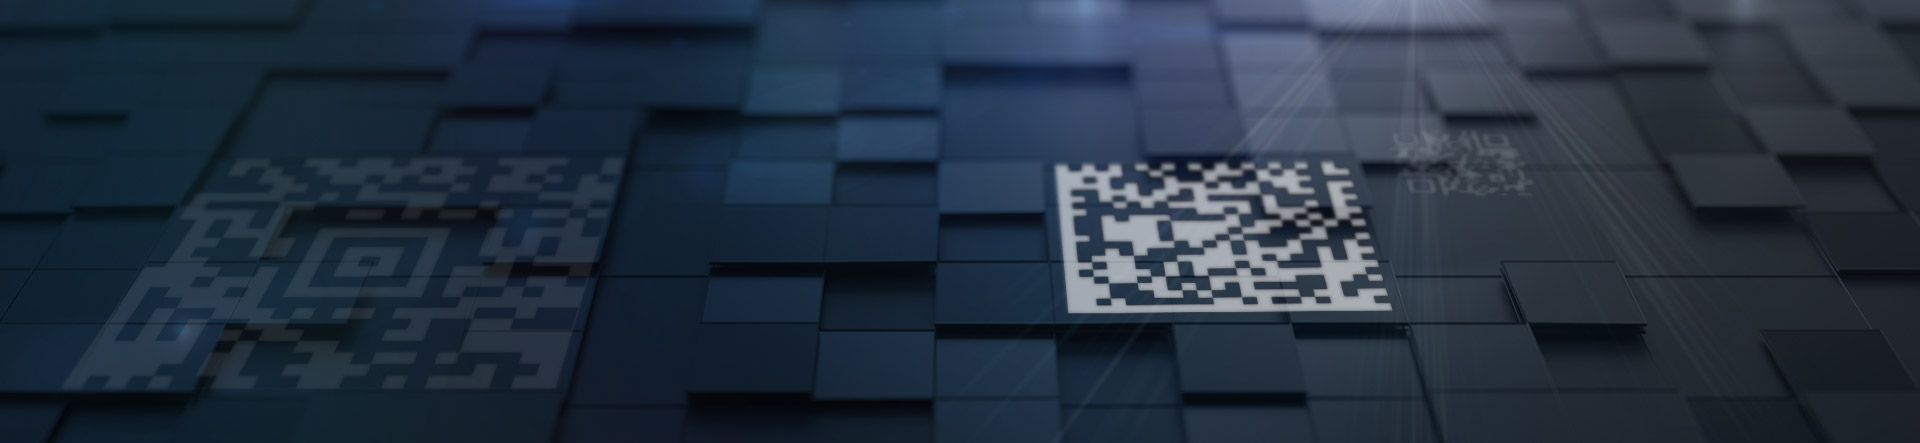 various 2d barcodes on raised square surface